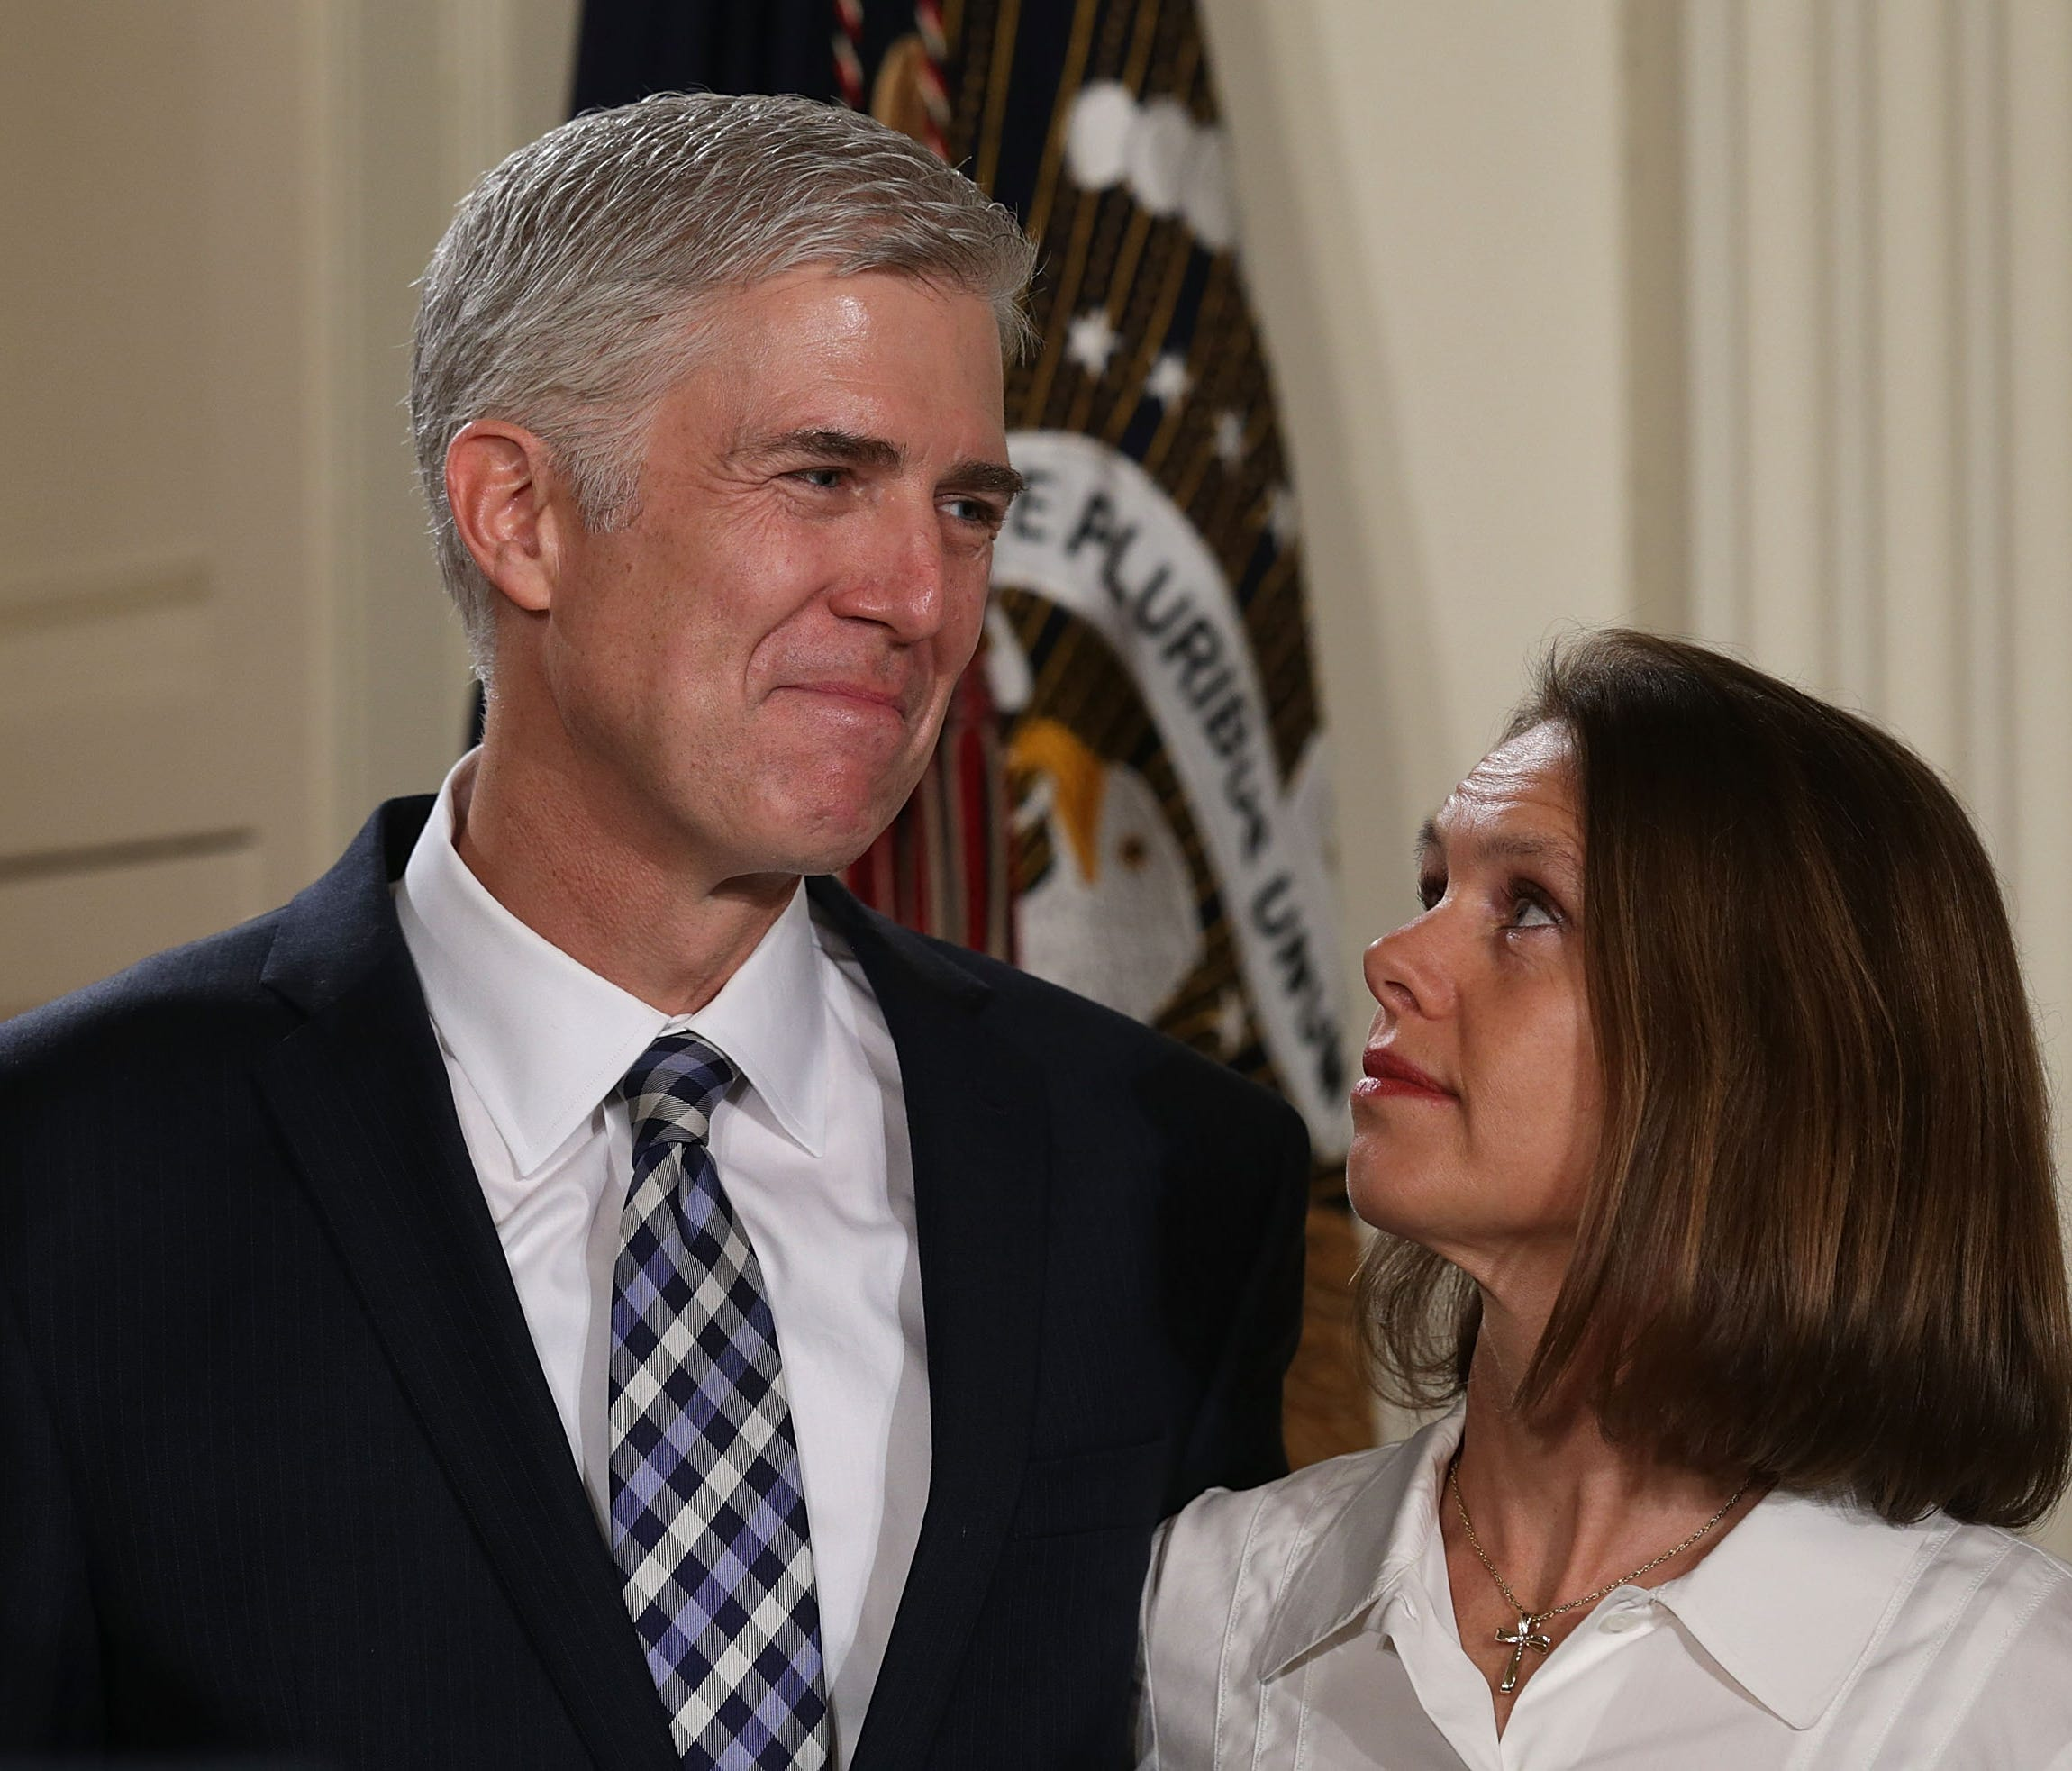 Federal appeals court judge Neil Gorsuch and his wife, Louise, listen as President Trump introduces the Supreme Court nominee Jan. 31 in the East Room of the White House.